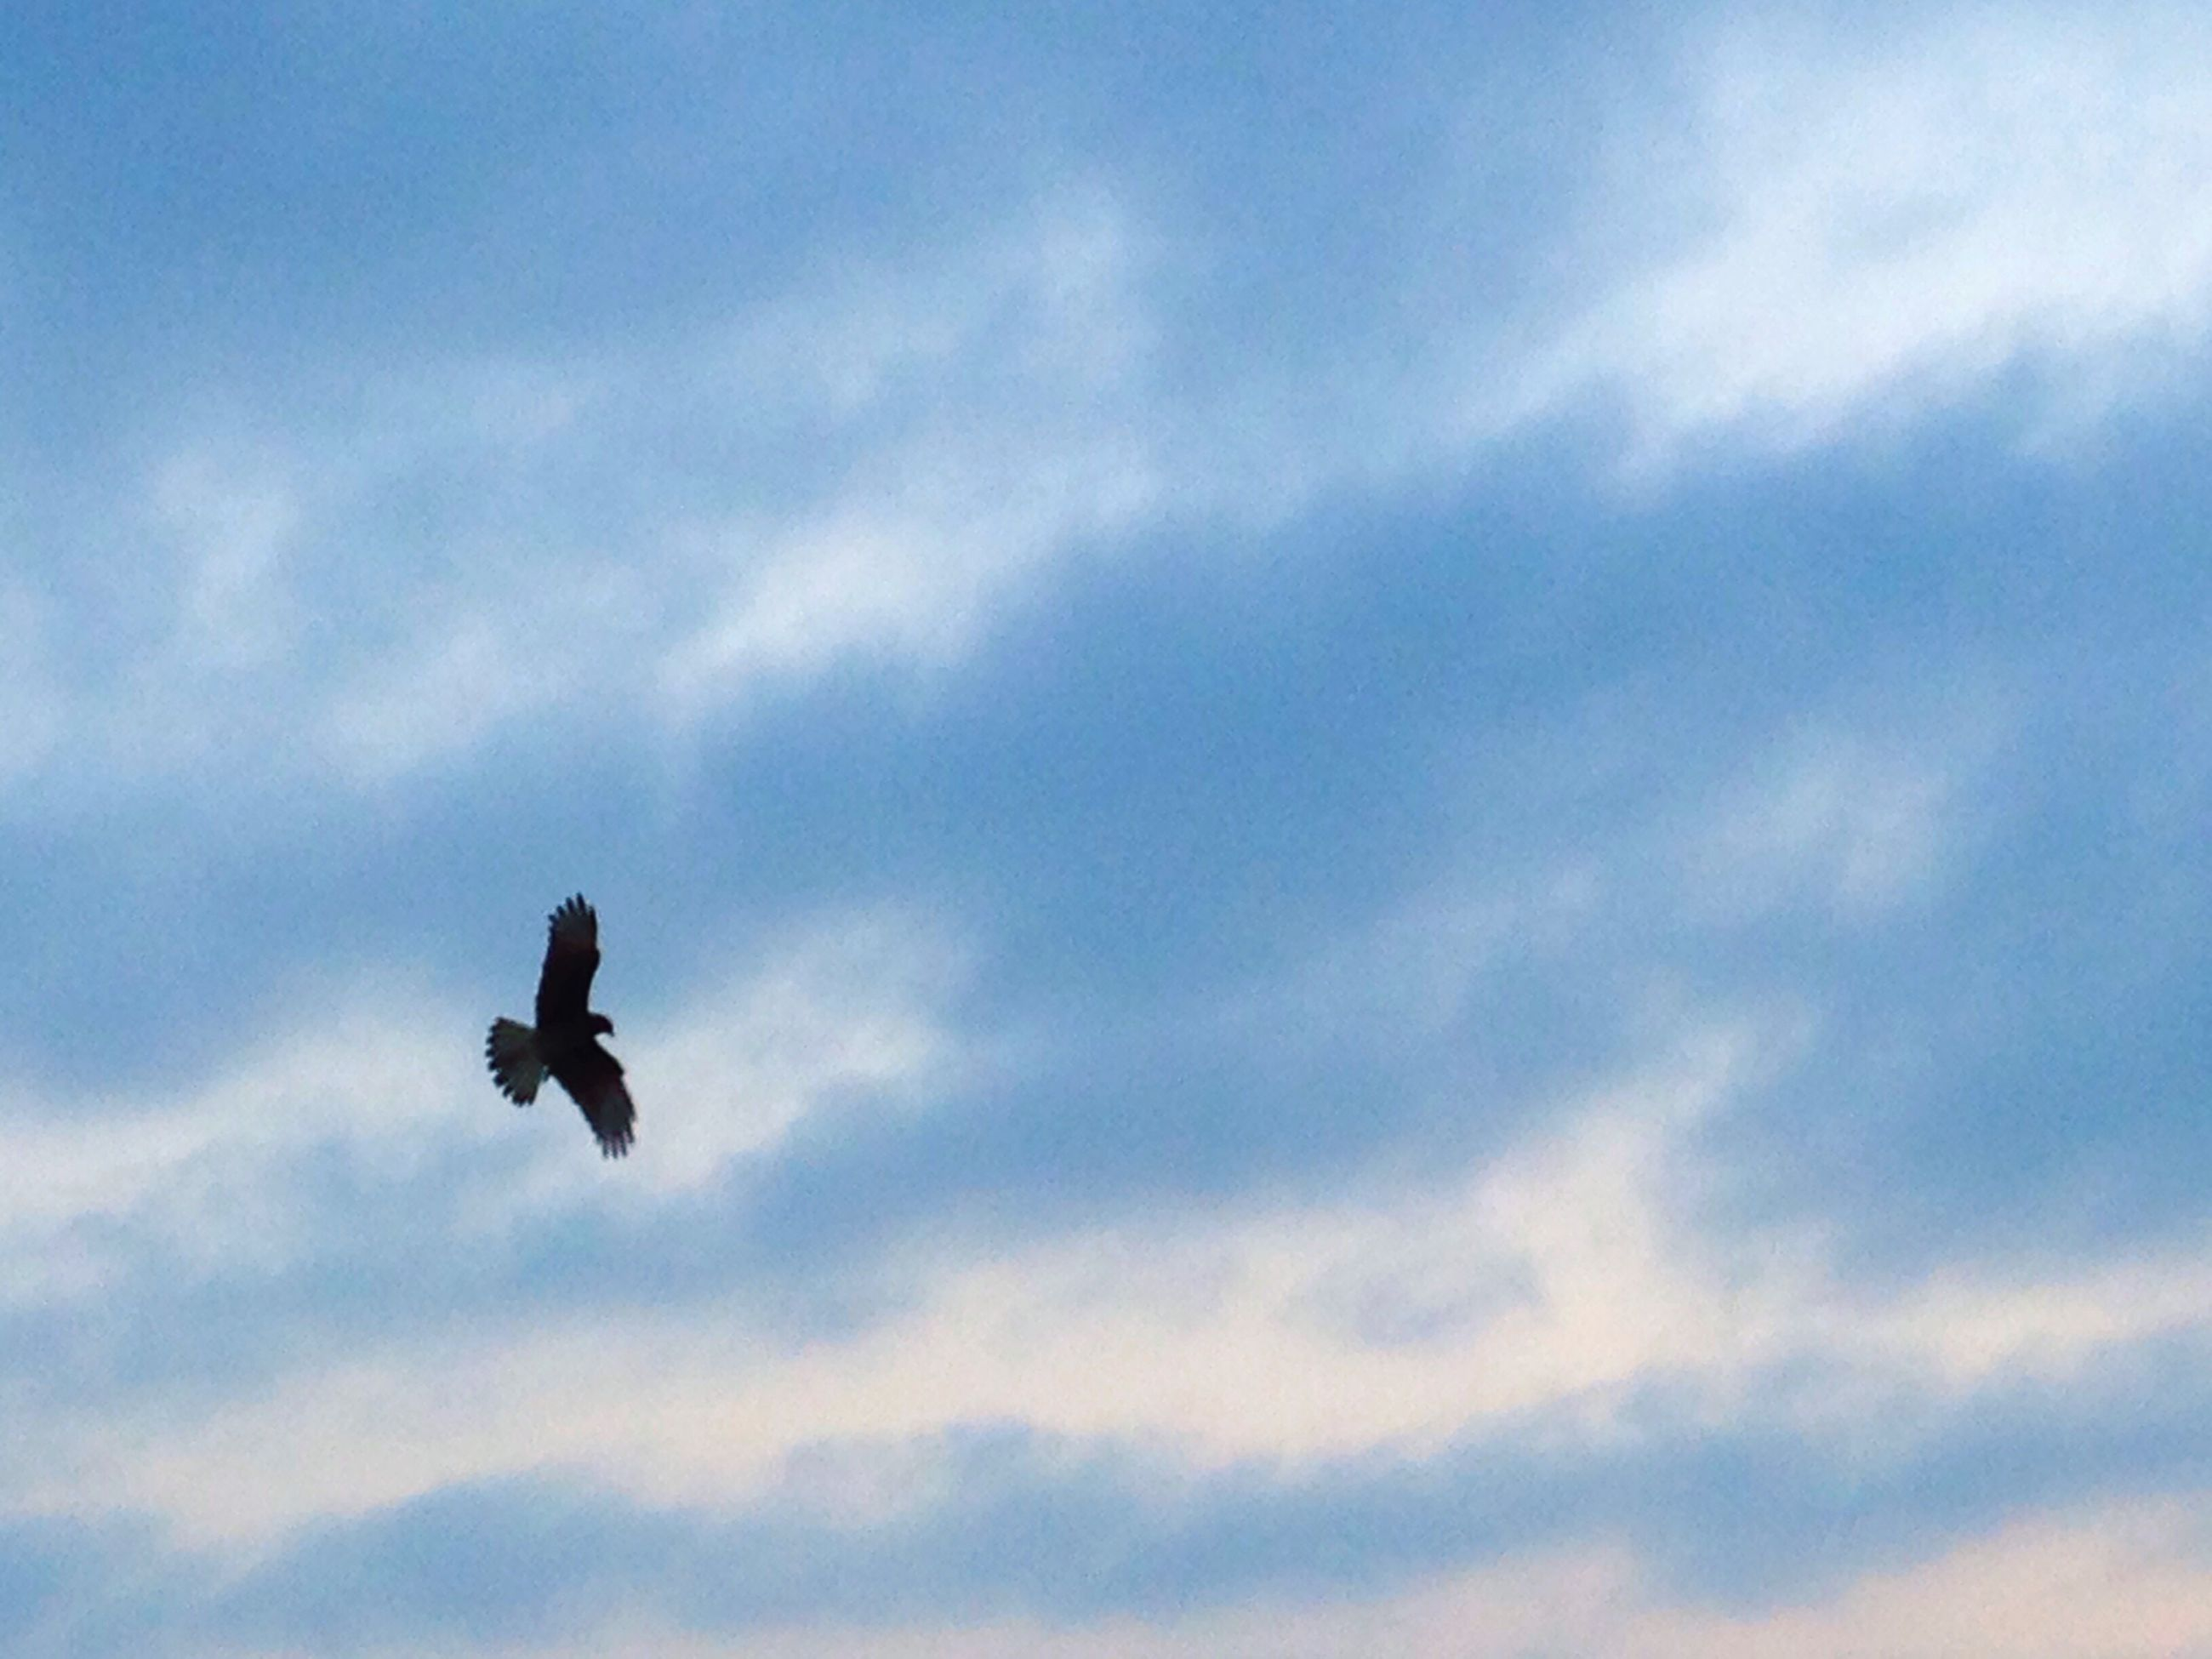 low angle view, animal themes, animals in the wild, bird, flying, wildlife, mid-air, sky, spread wings, one animal, cloud - sky, full length, silhouette, two animals, motion, nature, cloudy, freedom, outdoors, cloud